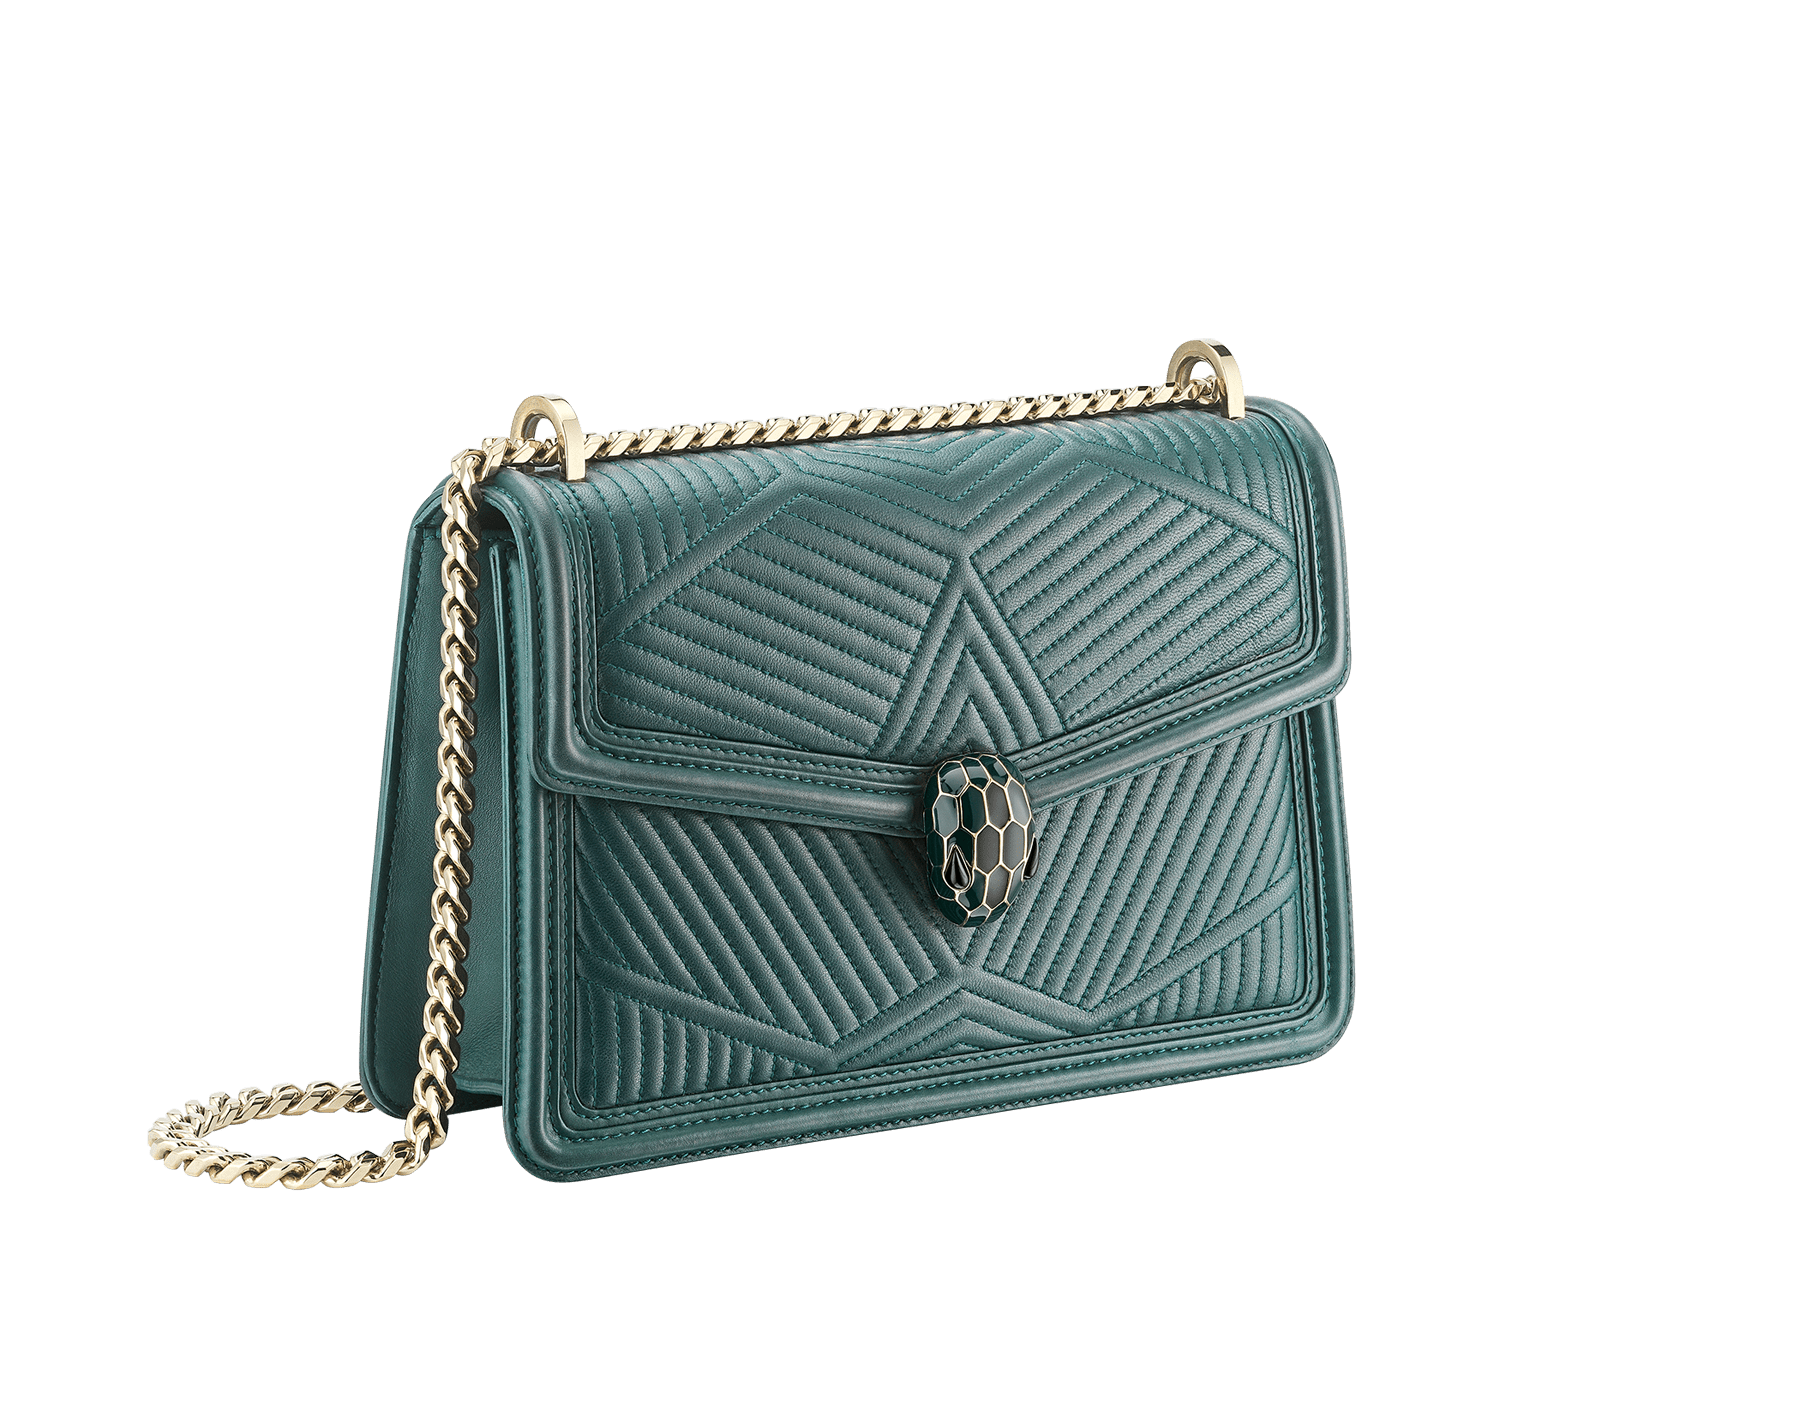 Serpenti Diamond Blast shoulder bag in forest emerald quilted nappa leather body and forest emerald calf leather frames. Snakehead closure in light gold plated brass decorated with forest emerald and black enamel, and black onyx eyes. 287850 image 2